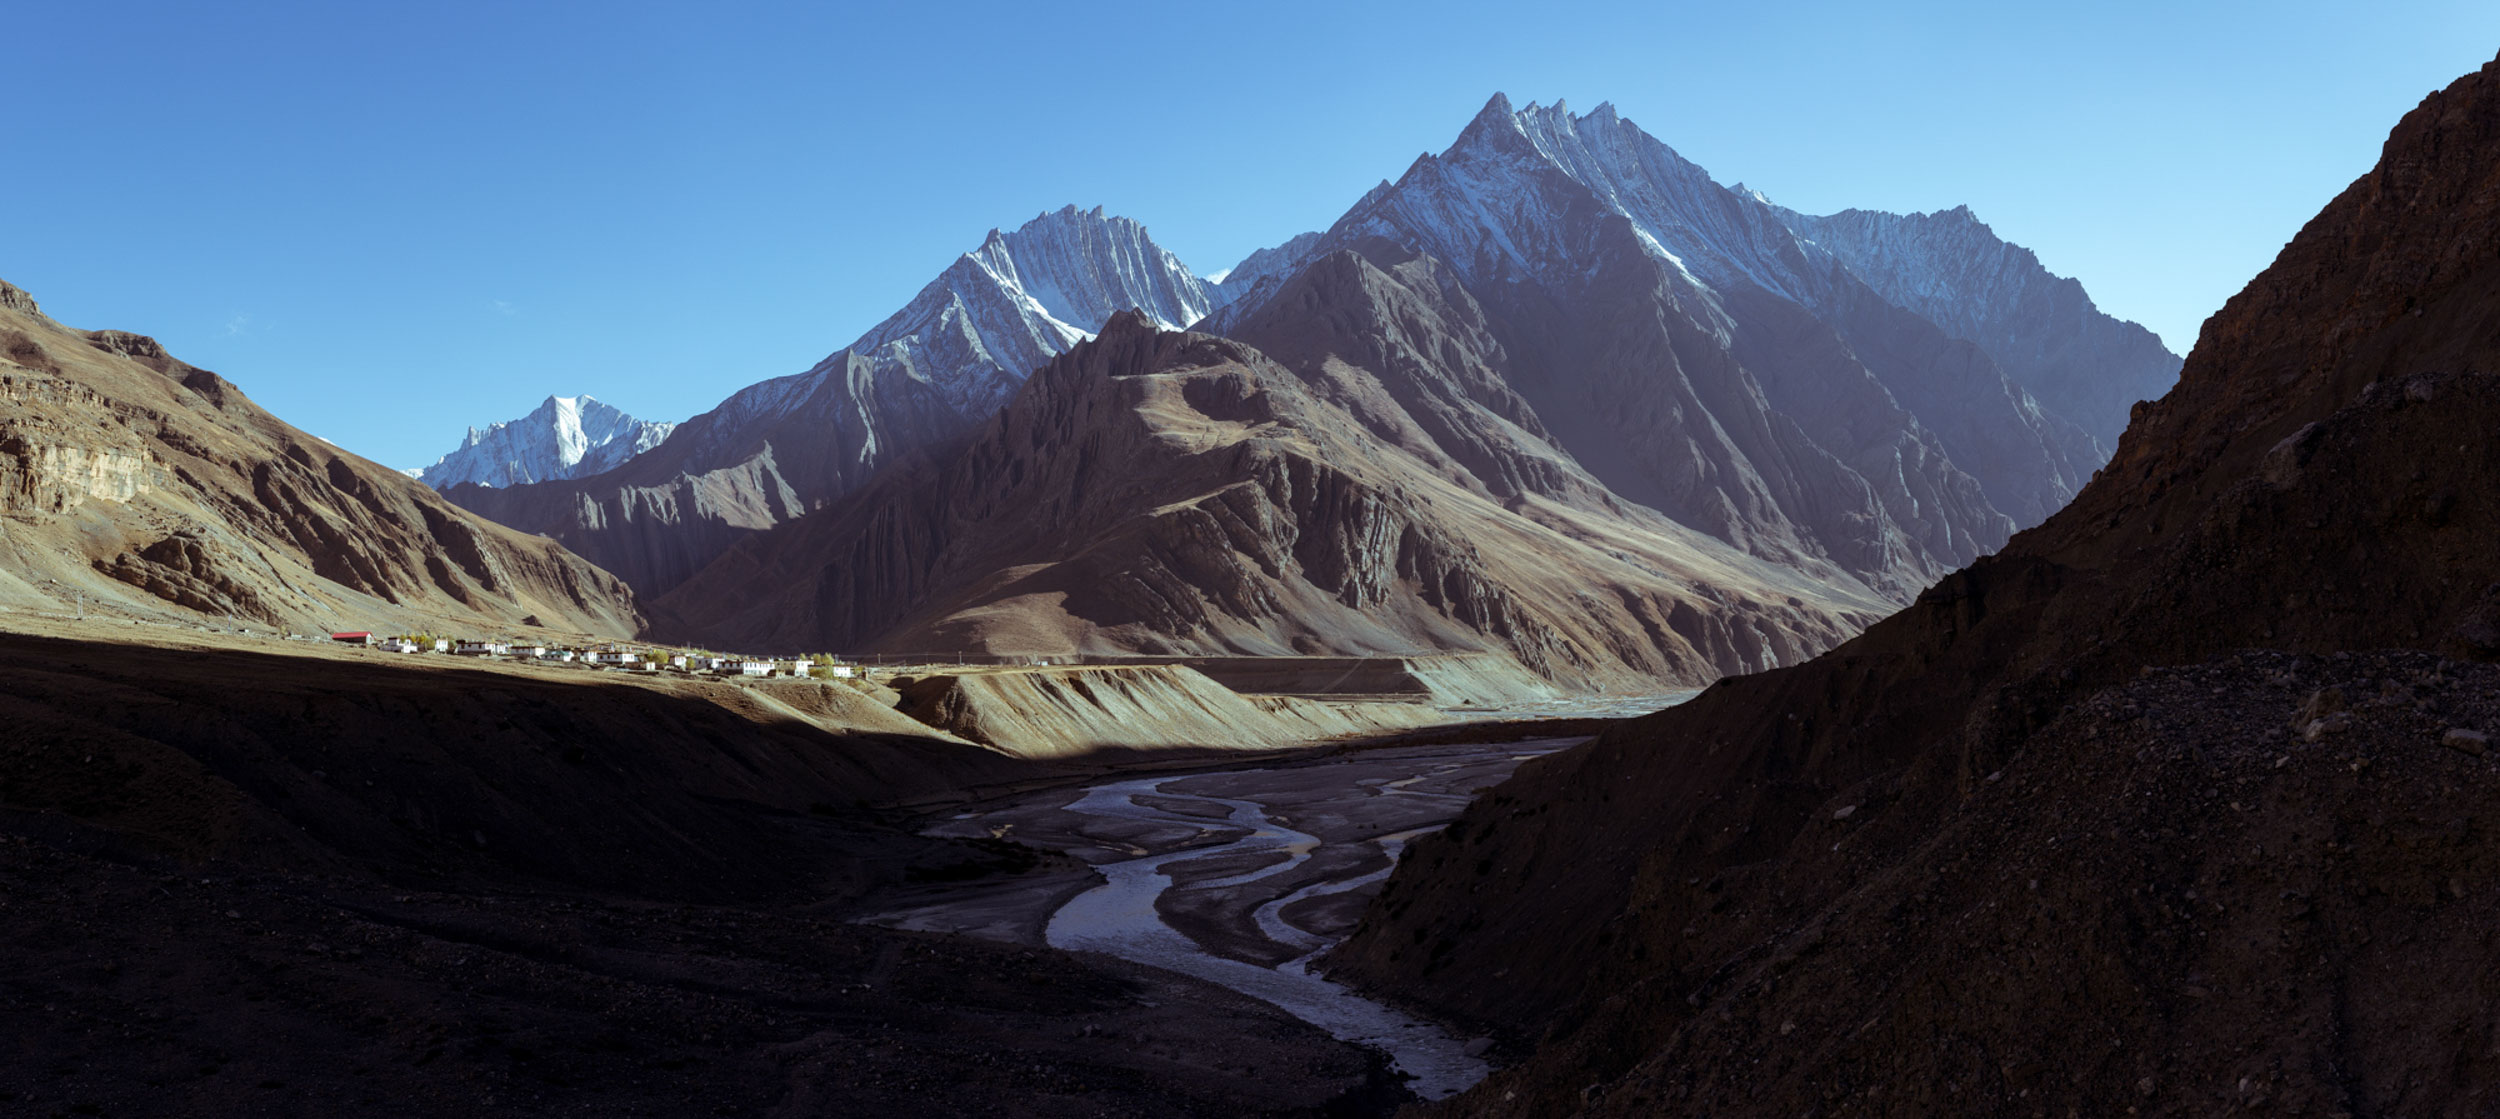 Bax-Towner-PF-Travel-India-Spiti-Valley